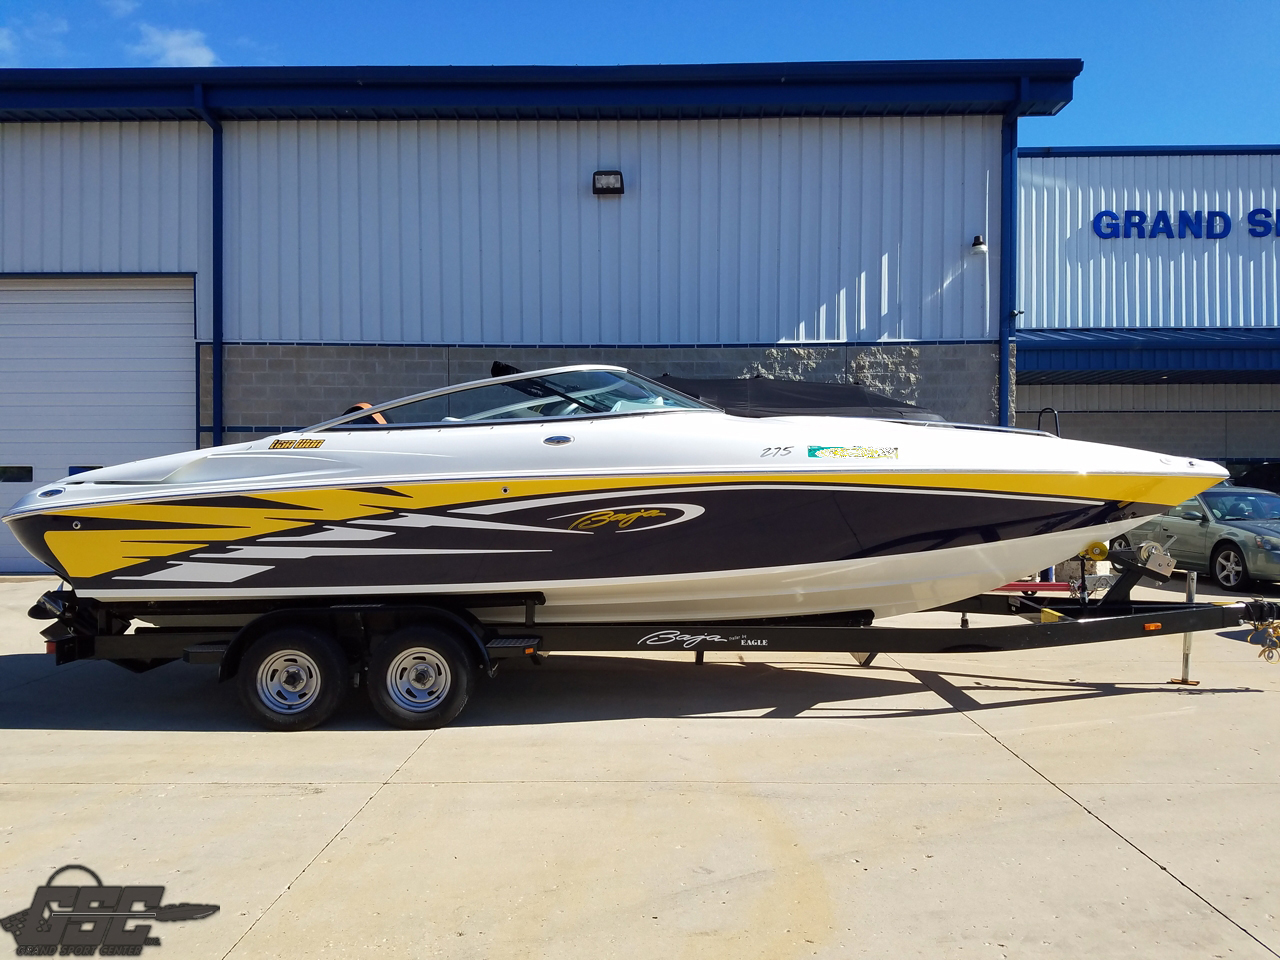 SOLD IN 48 HRS - 2006 Baja 275 Performance